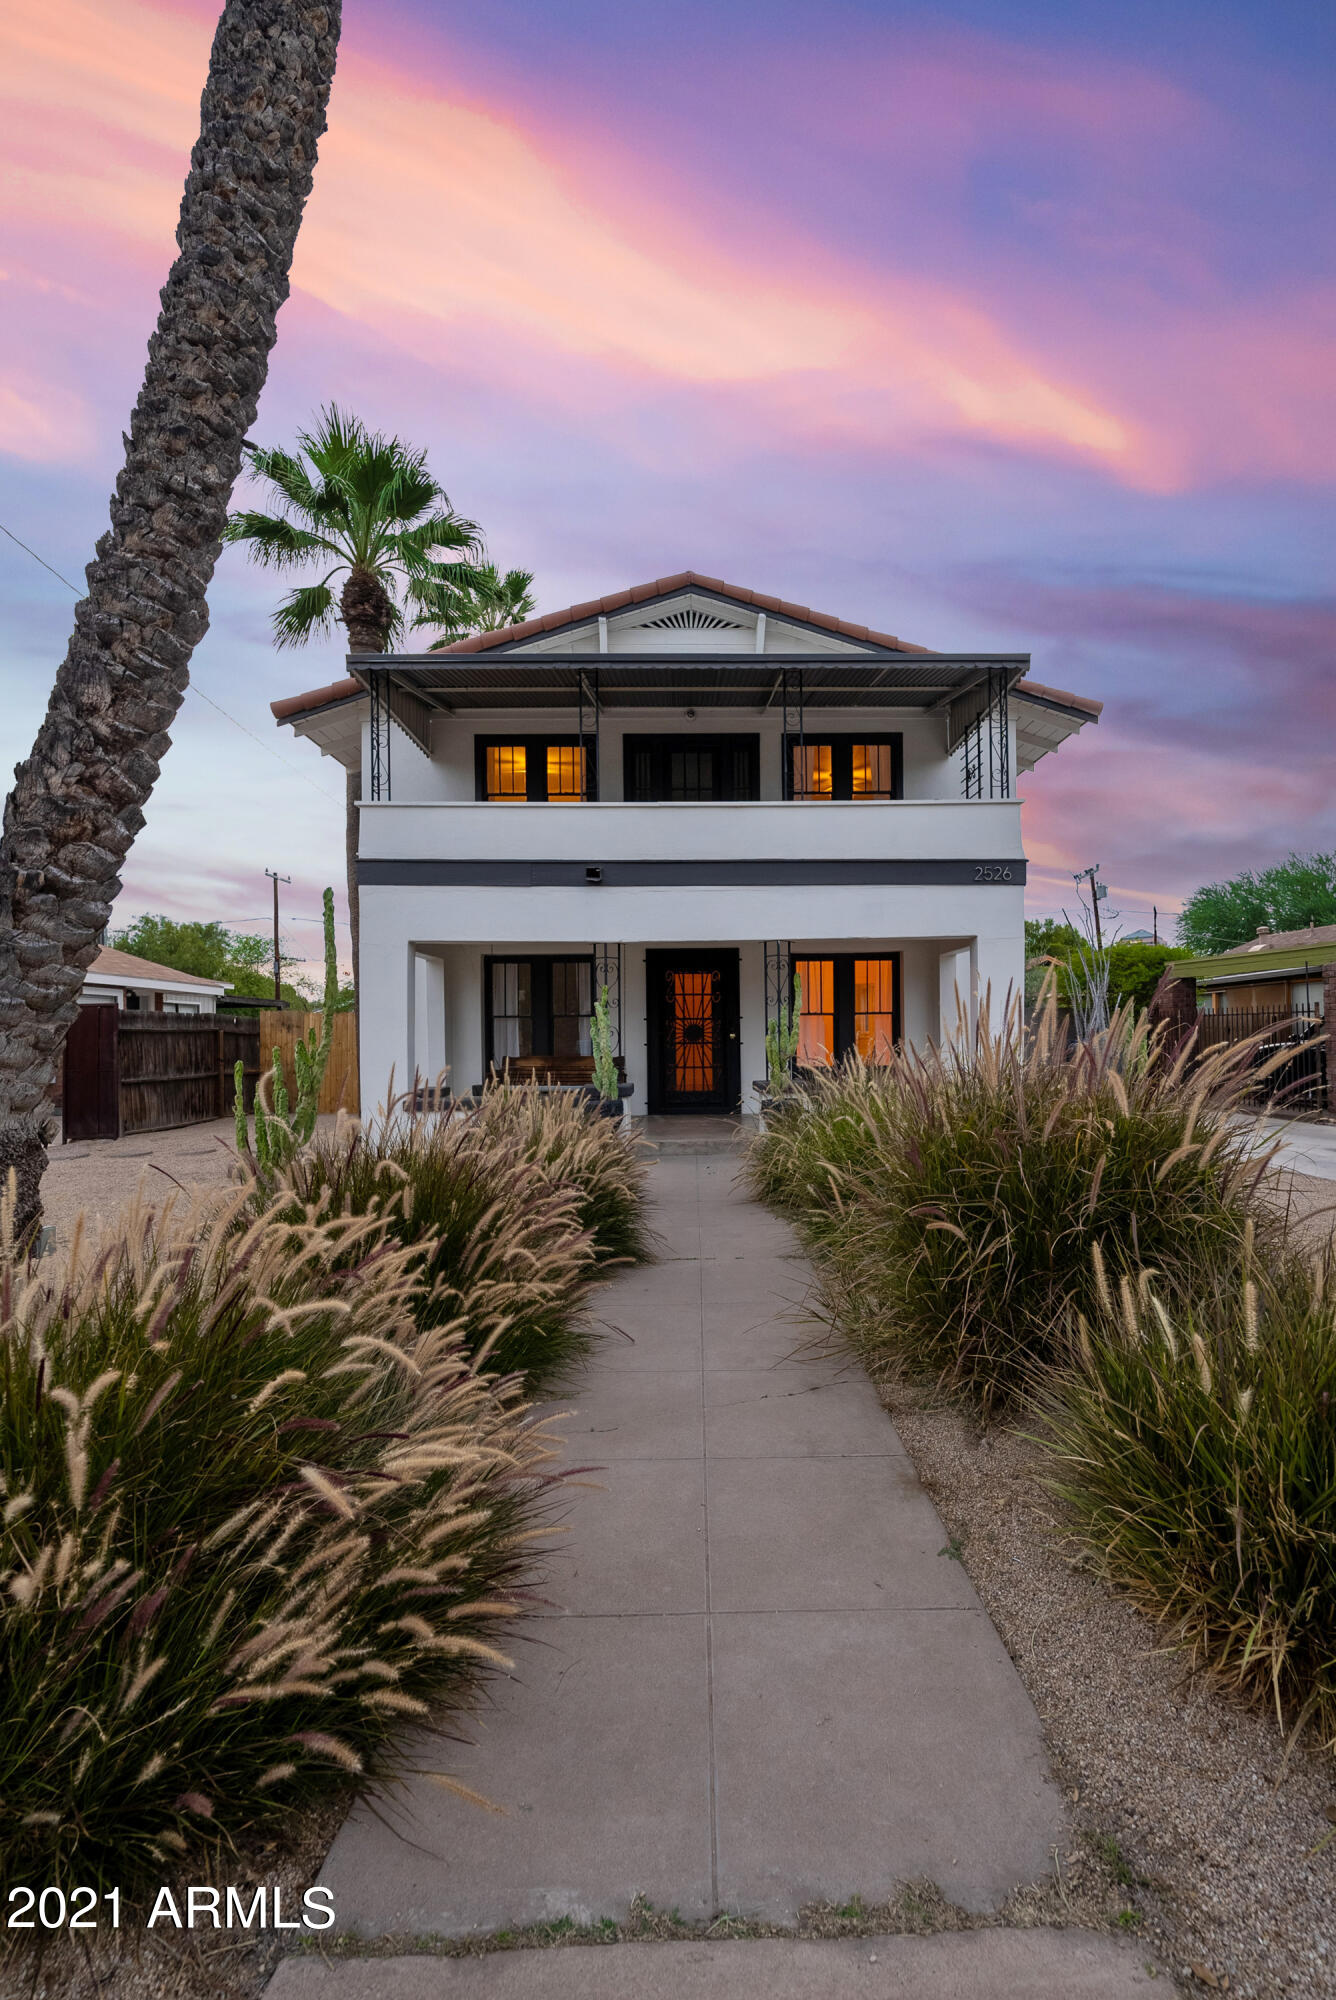 Welcome home to this stunning historic home in the heart of the coolest neighborhood in all of Phoenix, the Coronado District! It's impossible to find an original two story bursting with charm like this one! This meticulously maintained home boasts loads of natural sun light, a great layout, and all kinds of unique features. In the kitchen you'll find a perfectly kept ''Vent-A-Hood'' hood, along with a retro range. Design forward light fixtures round out the kitchen and living space, giving the lower level a swanky vibe. Upstairs you'll find three bedrooms, perfectly appointed, and flanked by balconies. Having said all that, the backyard is truly the crown jewel of this home. Tons of cacti, trees, and landscape surround the gorgeous pool. Hurry and see this one today, it won't last!